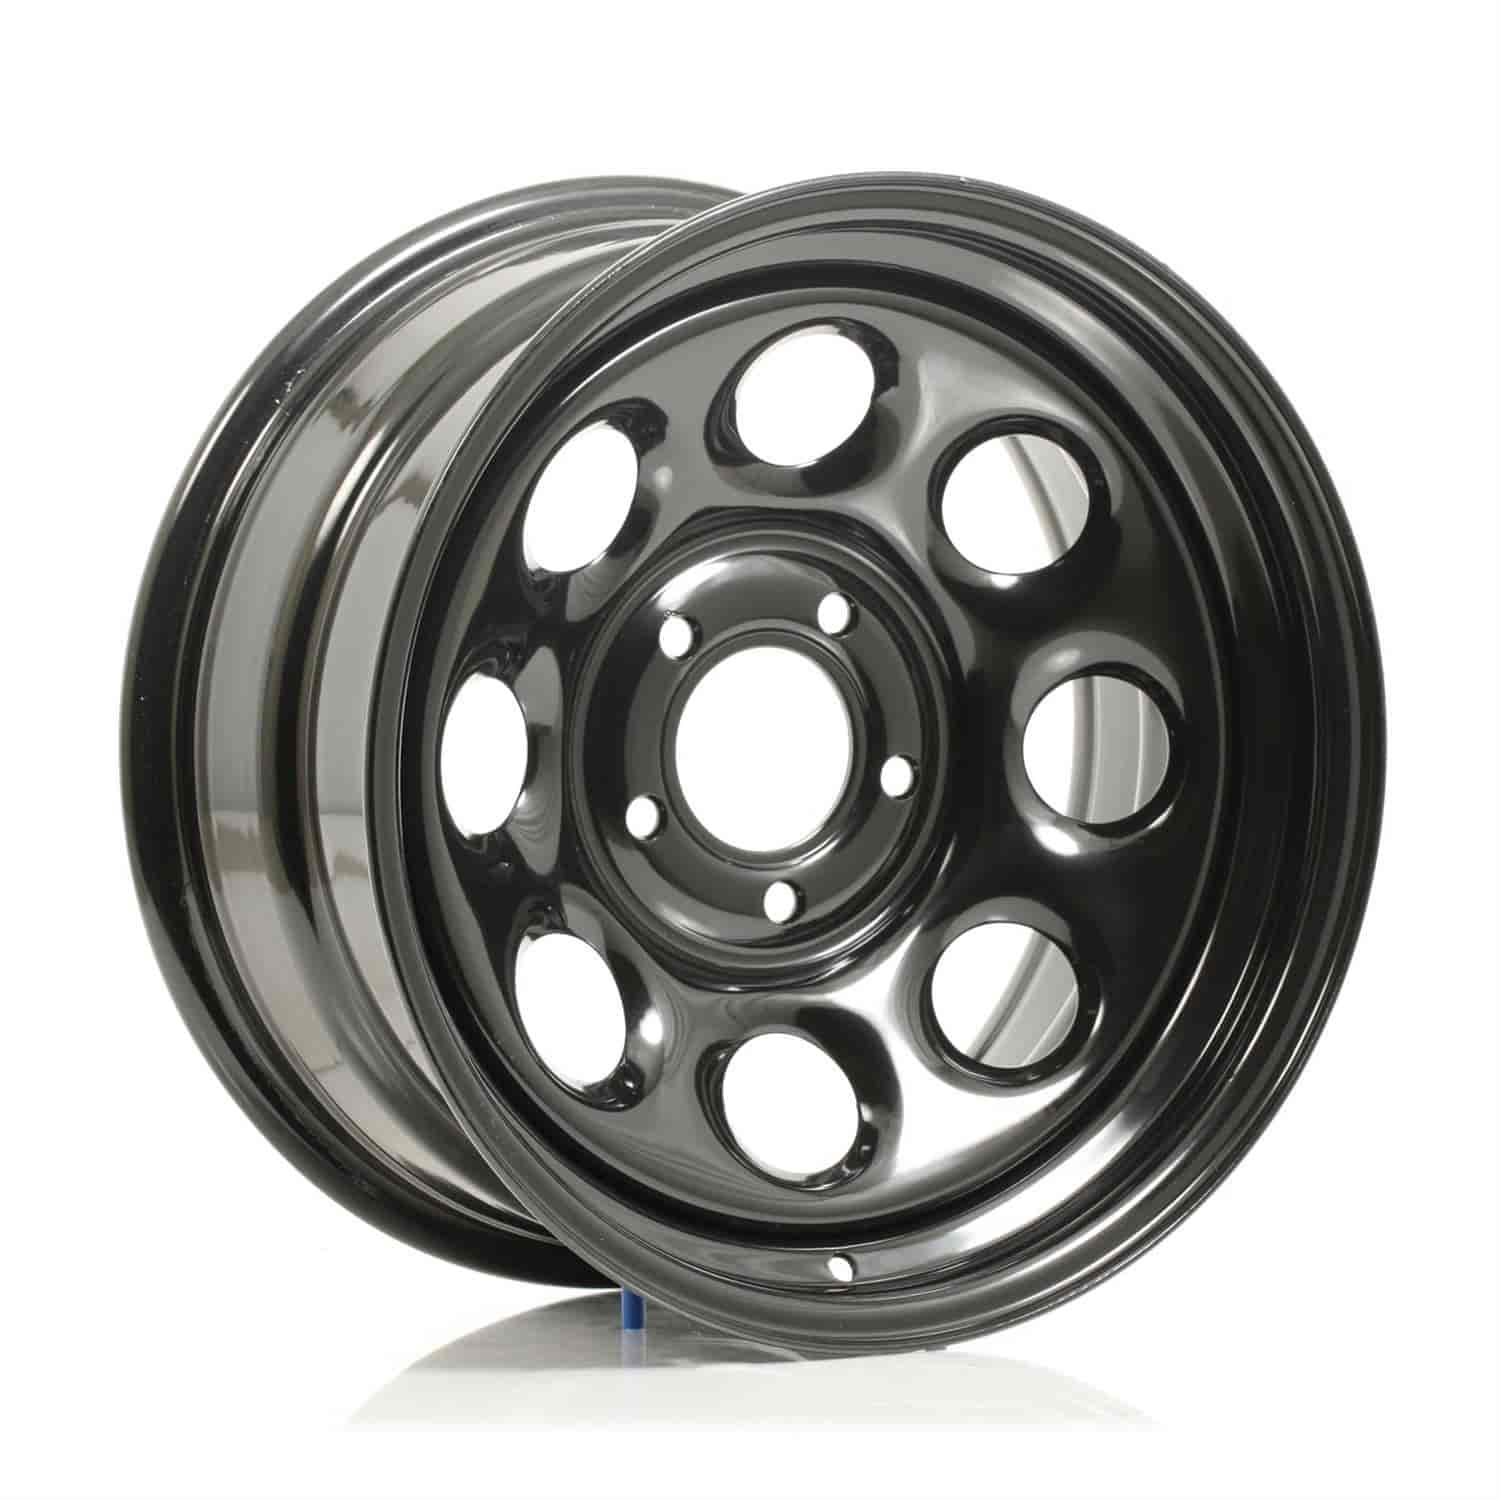 Cragar #3978835 - Cragar Black Soft 8 Wheels